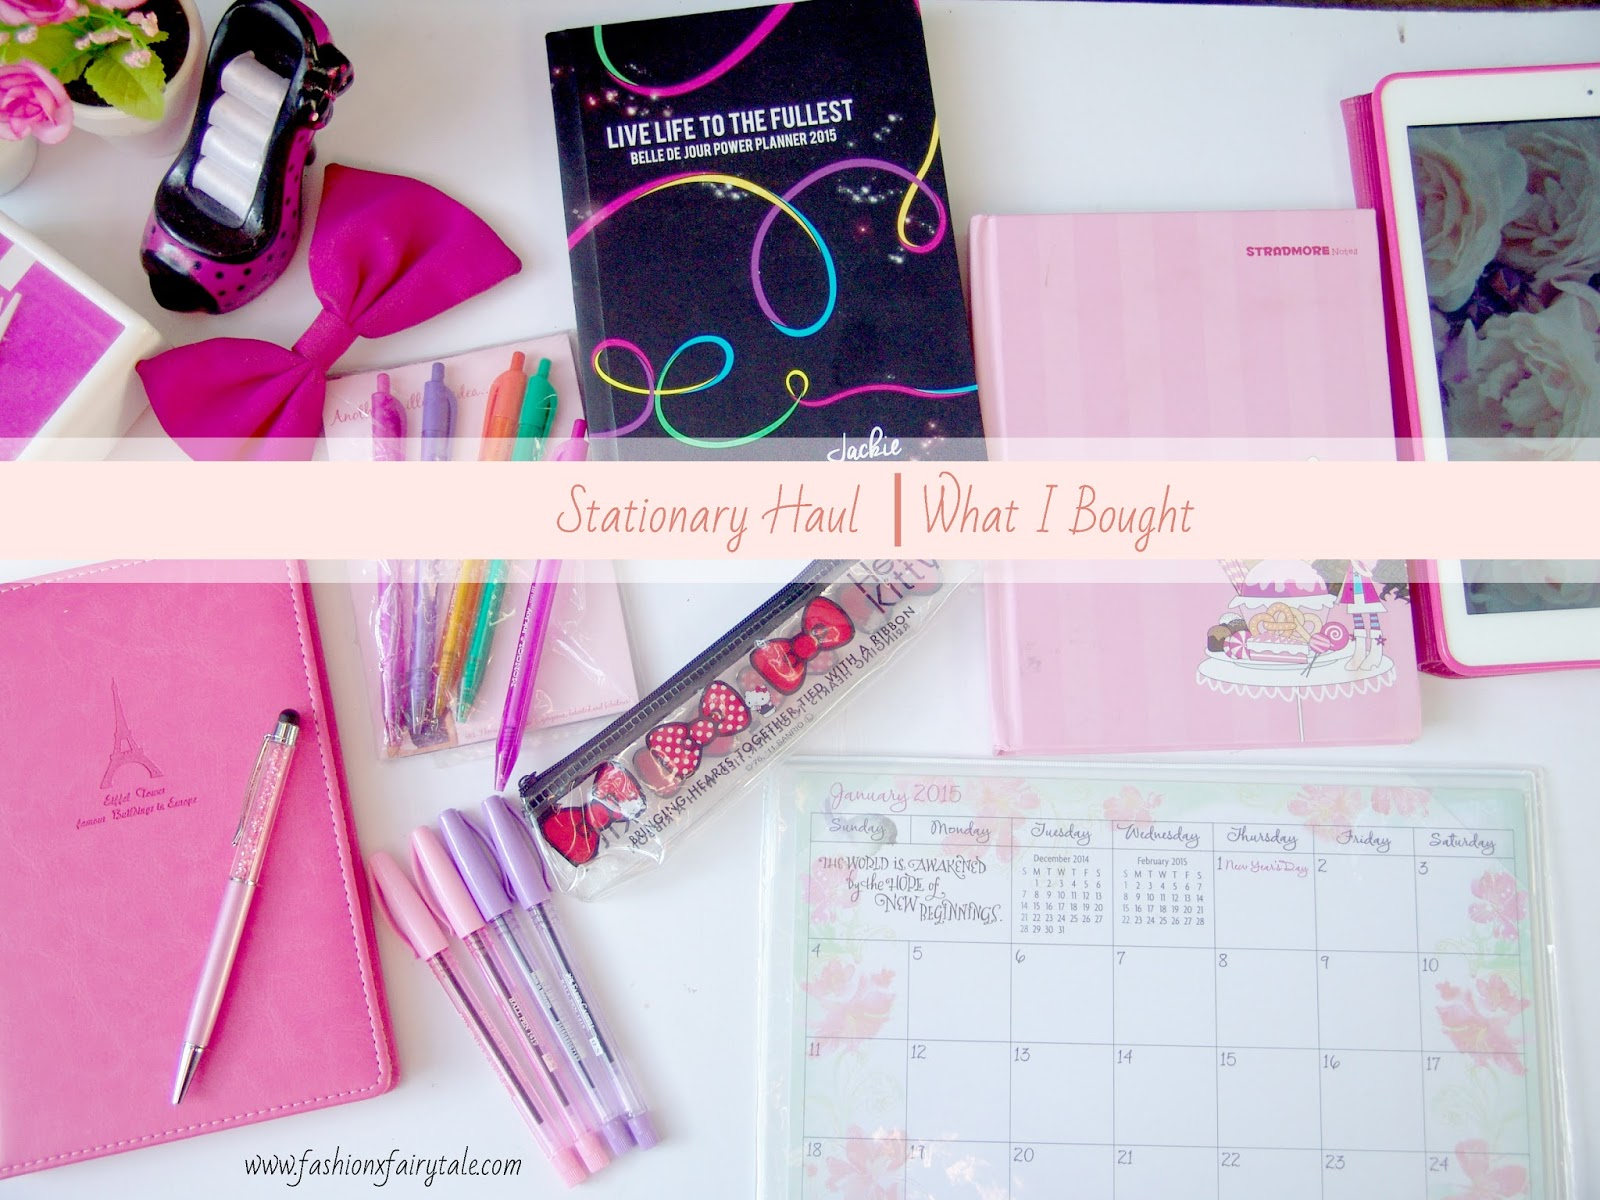 Stationary Haul | What I Bought